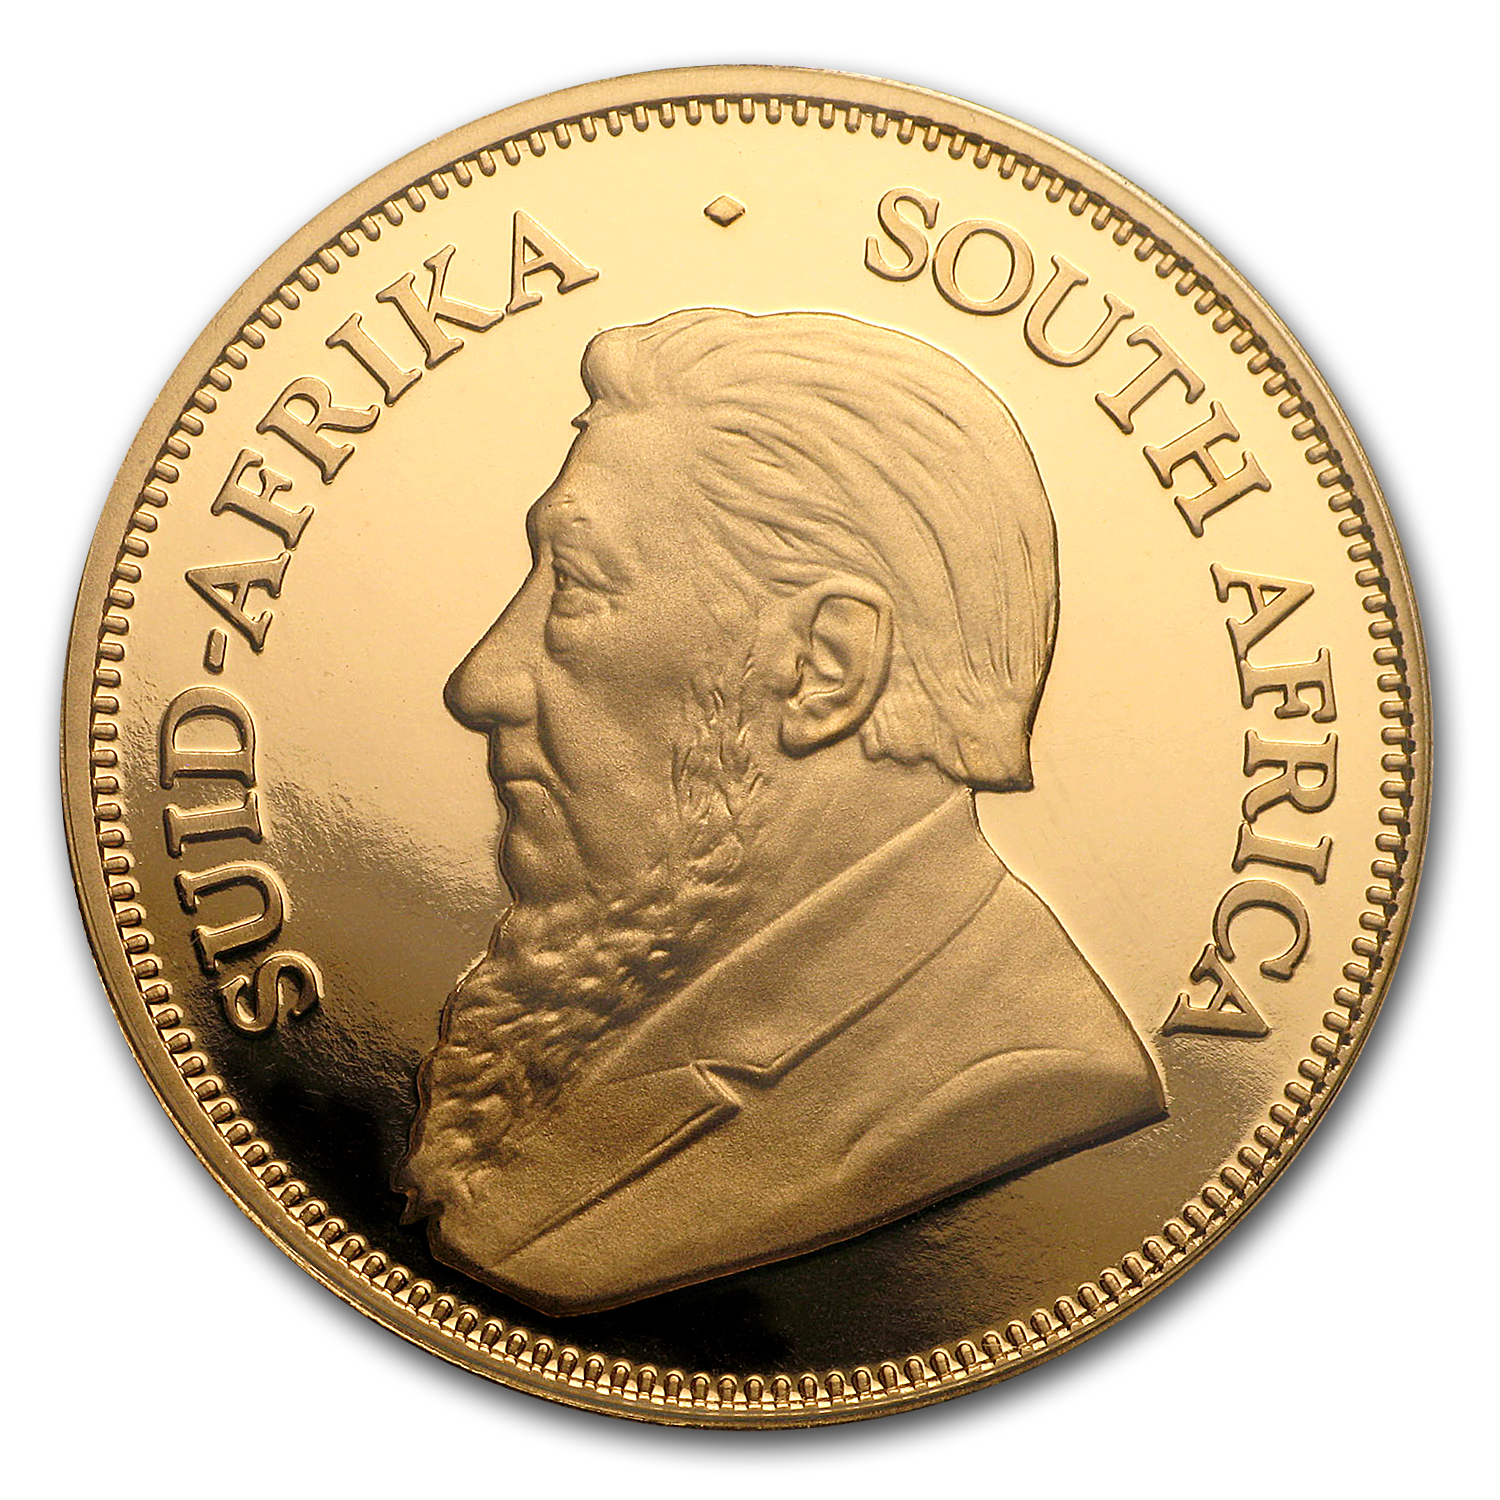 2004 1 oz Gold South African Krugerrand (Proof)